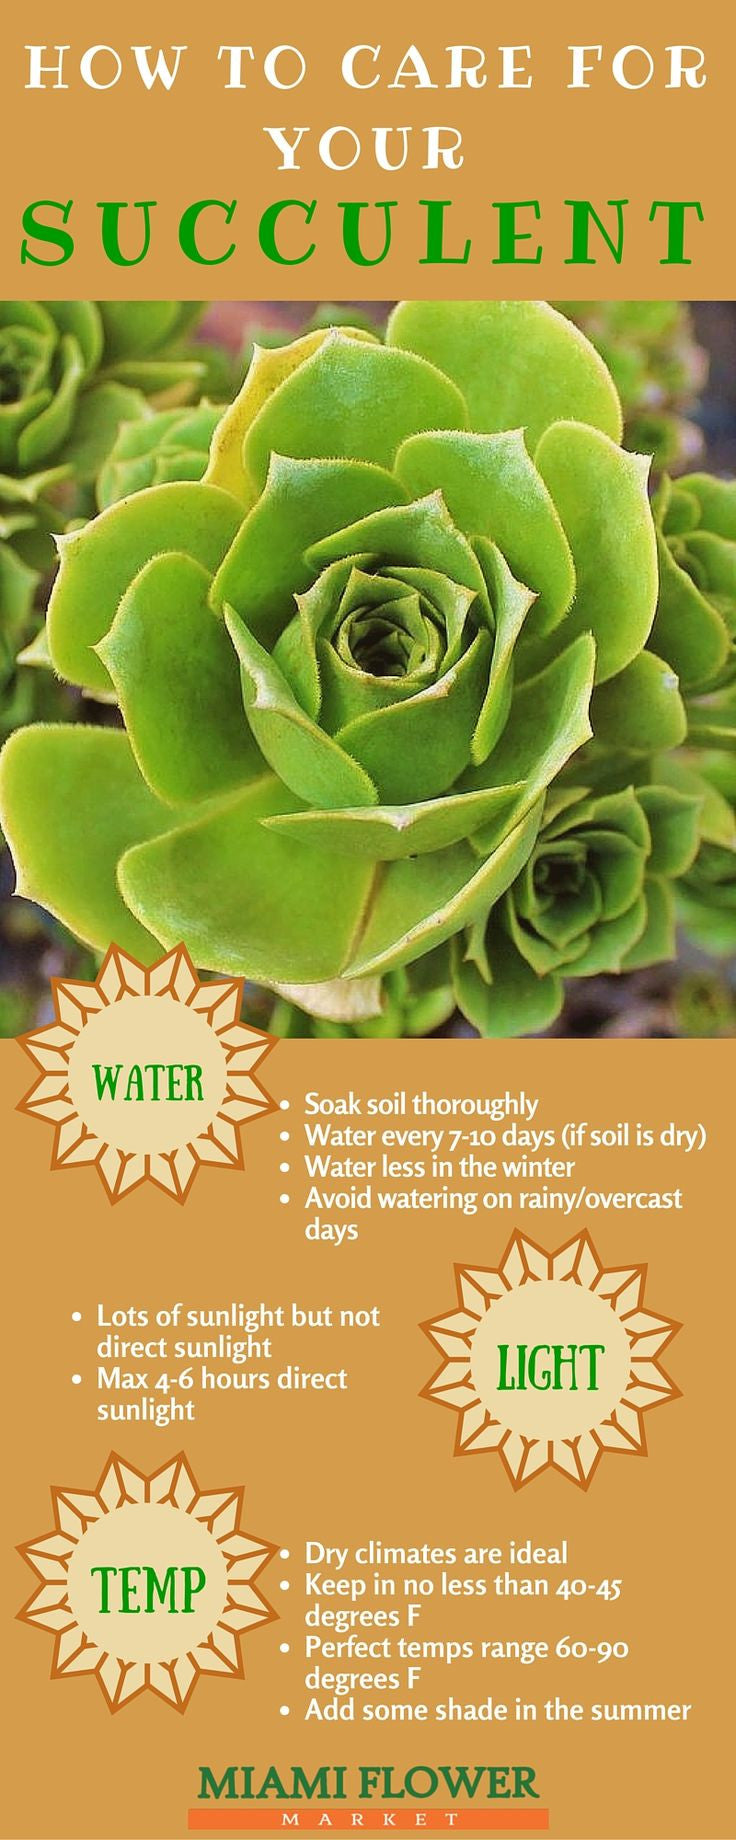 How To Care For Your Succulent